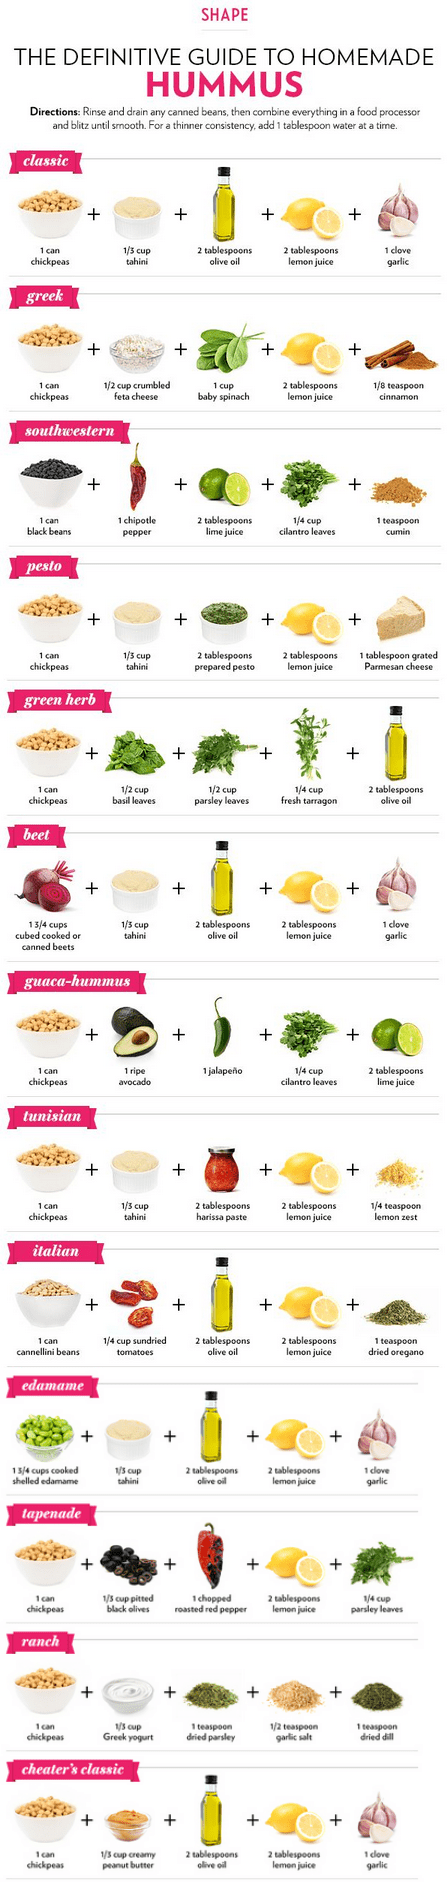 Chart recipe food hummus - 7866596096